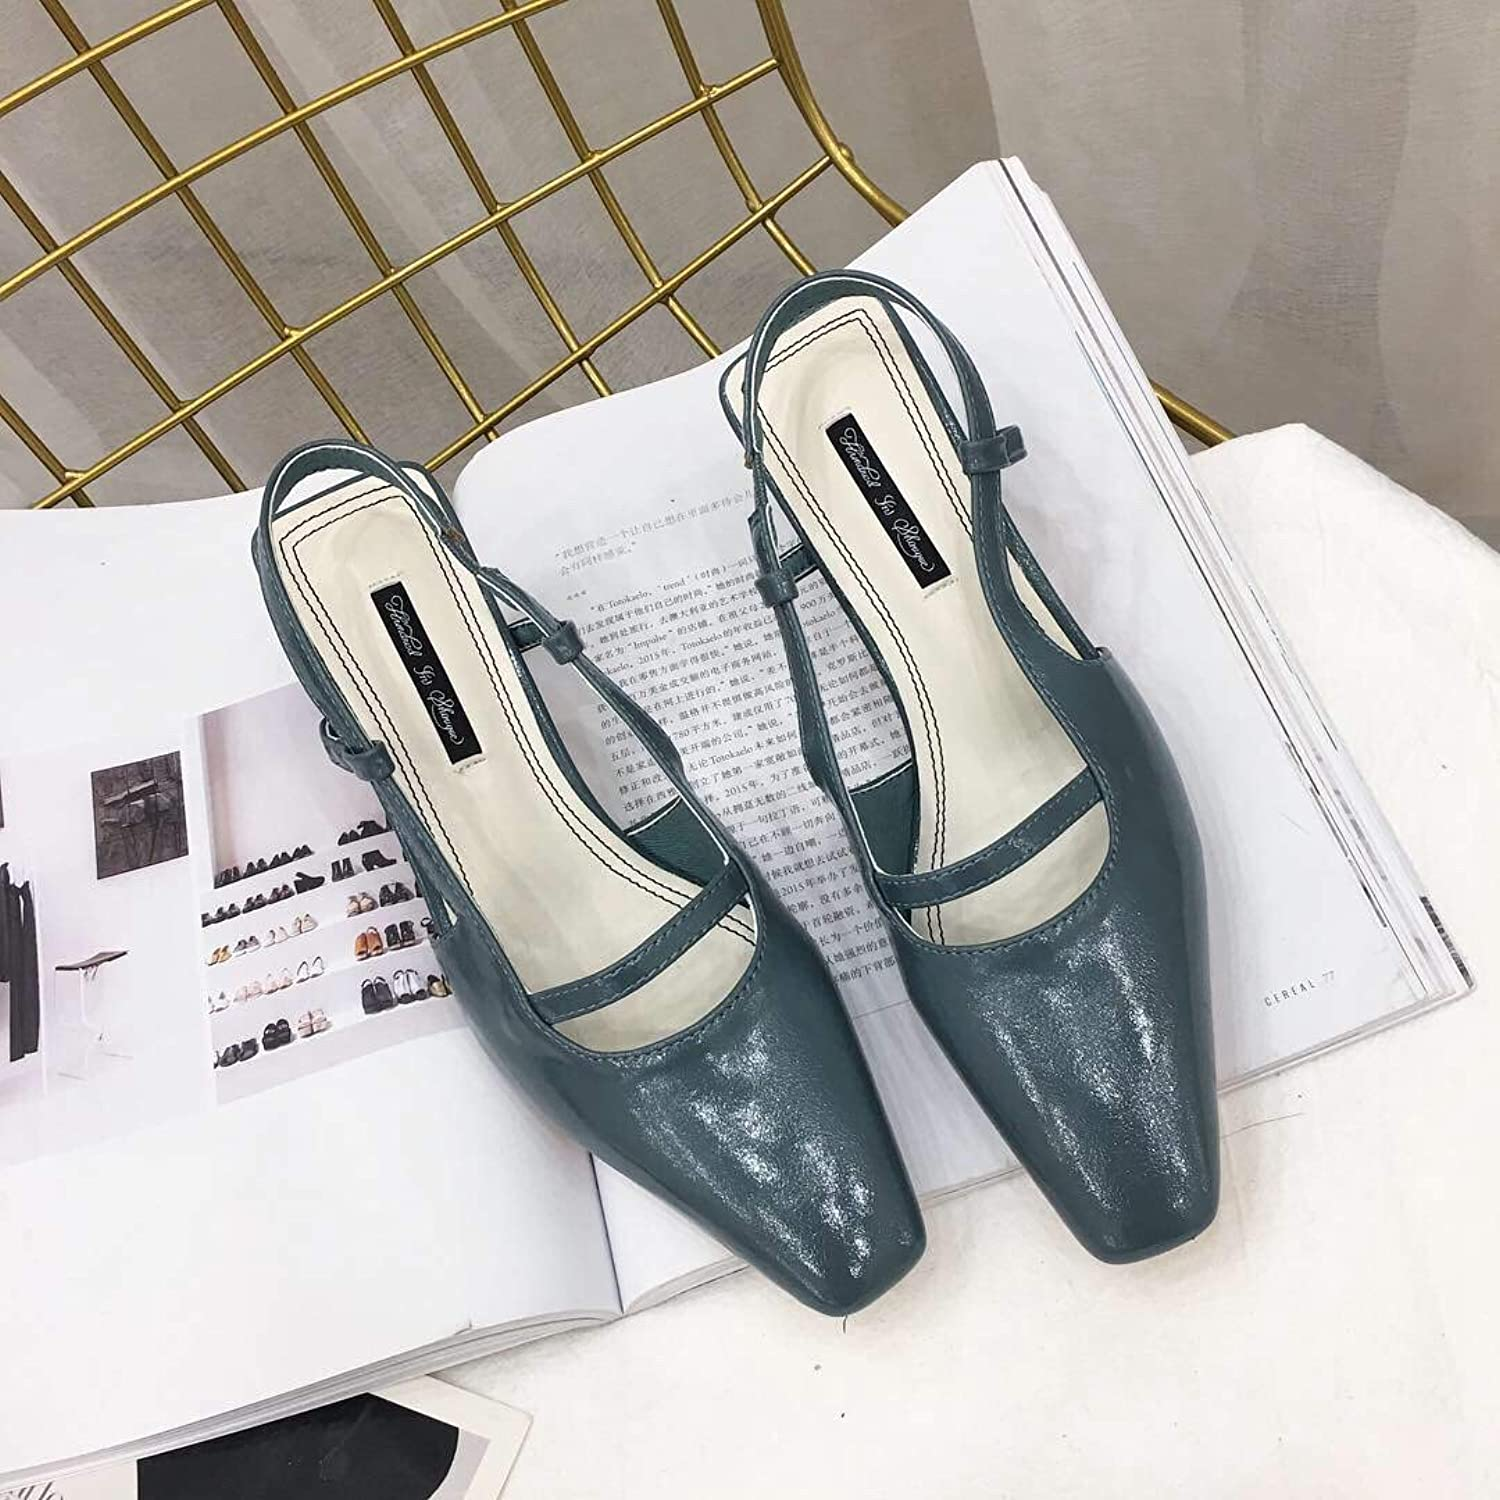 DNJKSA Rough Heels and High Heels Women's shoes in Spring and Summer of 2019 Have Elegant Temperament, Fashion and Simple Hollow Outwear